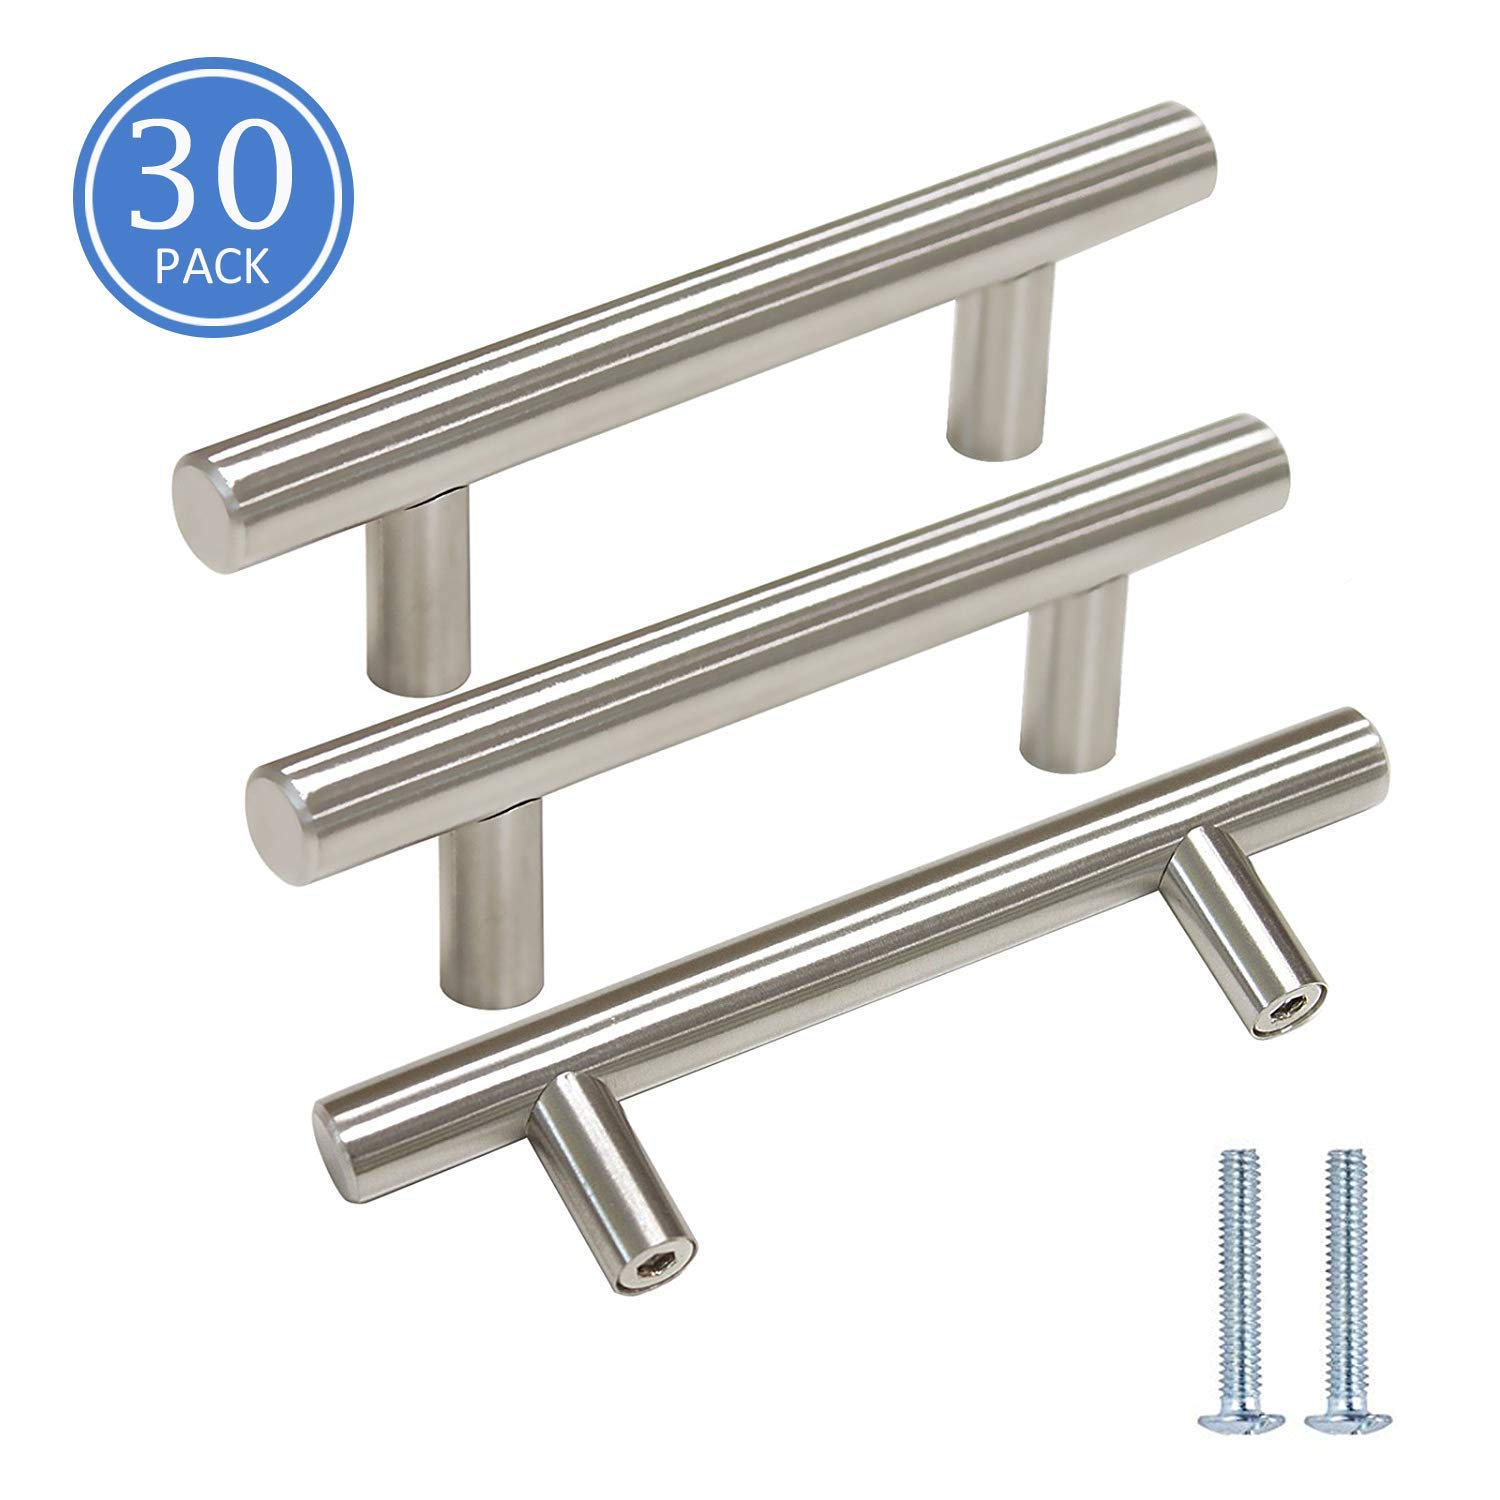 Knobonly 30 Pack 3 inch Hole Spacing 5 inch Total Length Kitchen Cupboard Dresser Drawer Handles and Pulls Stainless Steel Brushed Nickel Finish